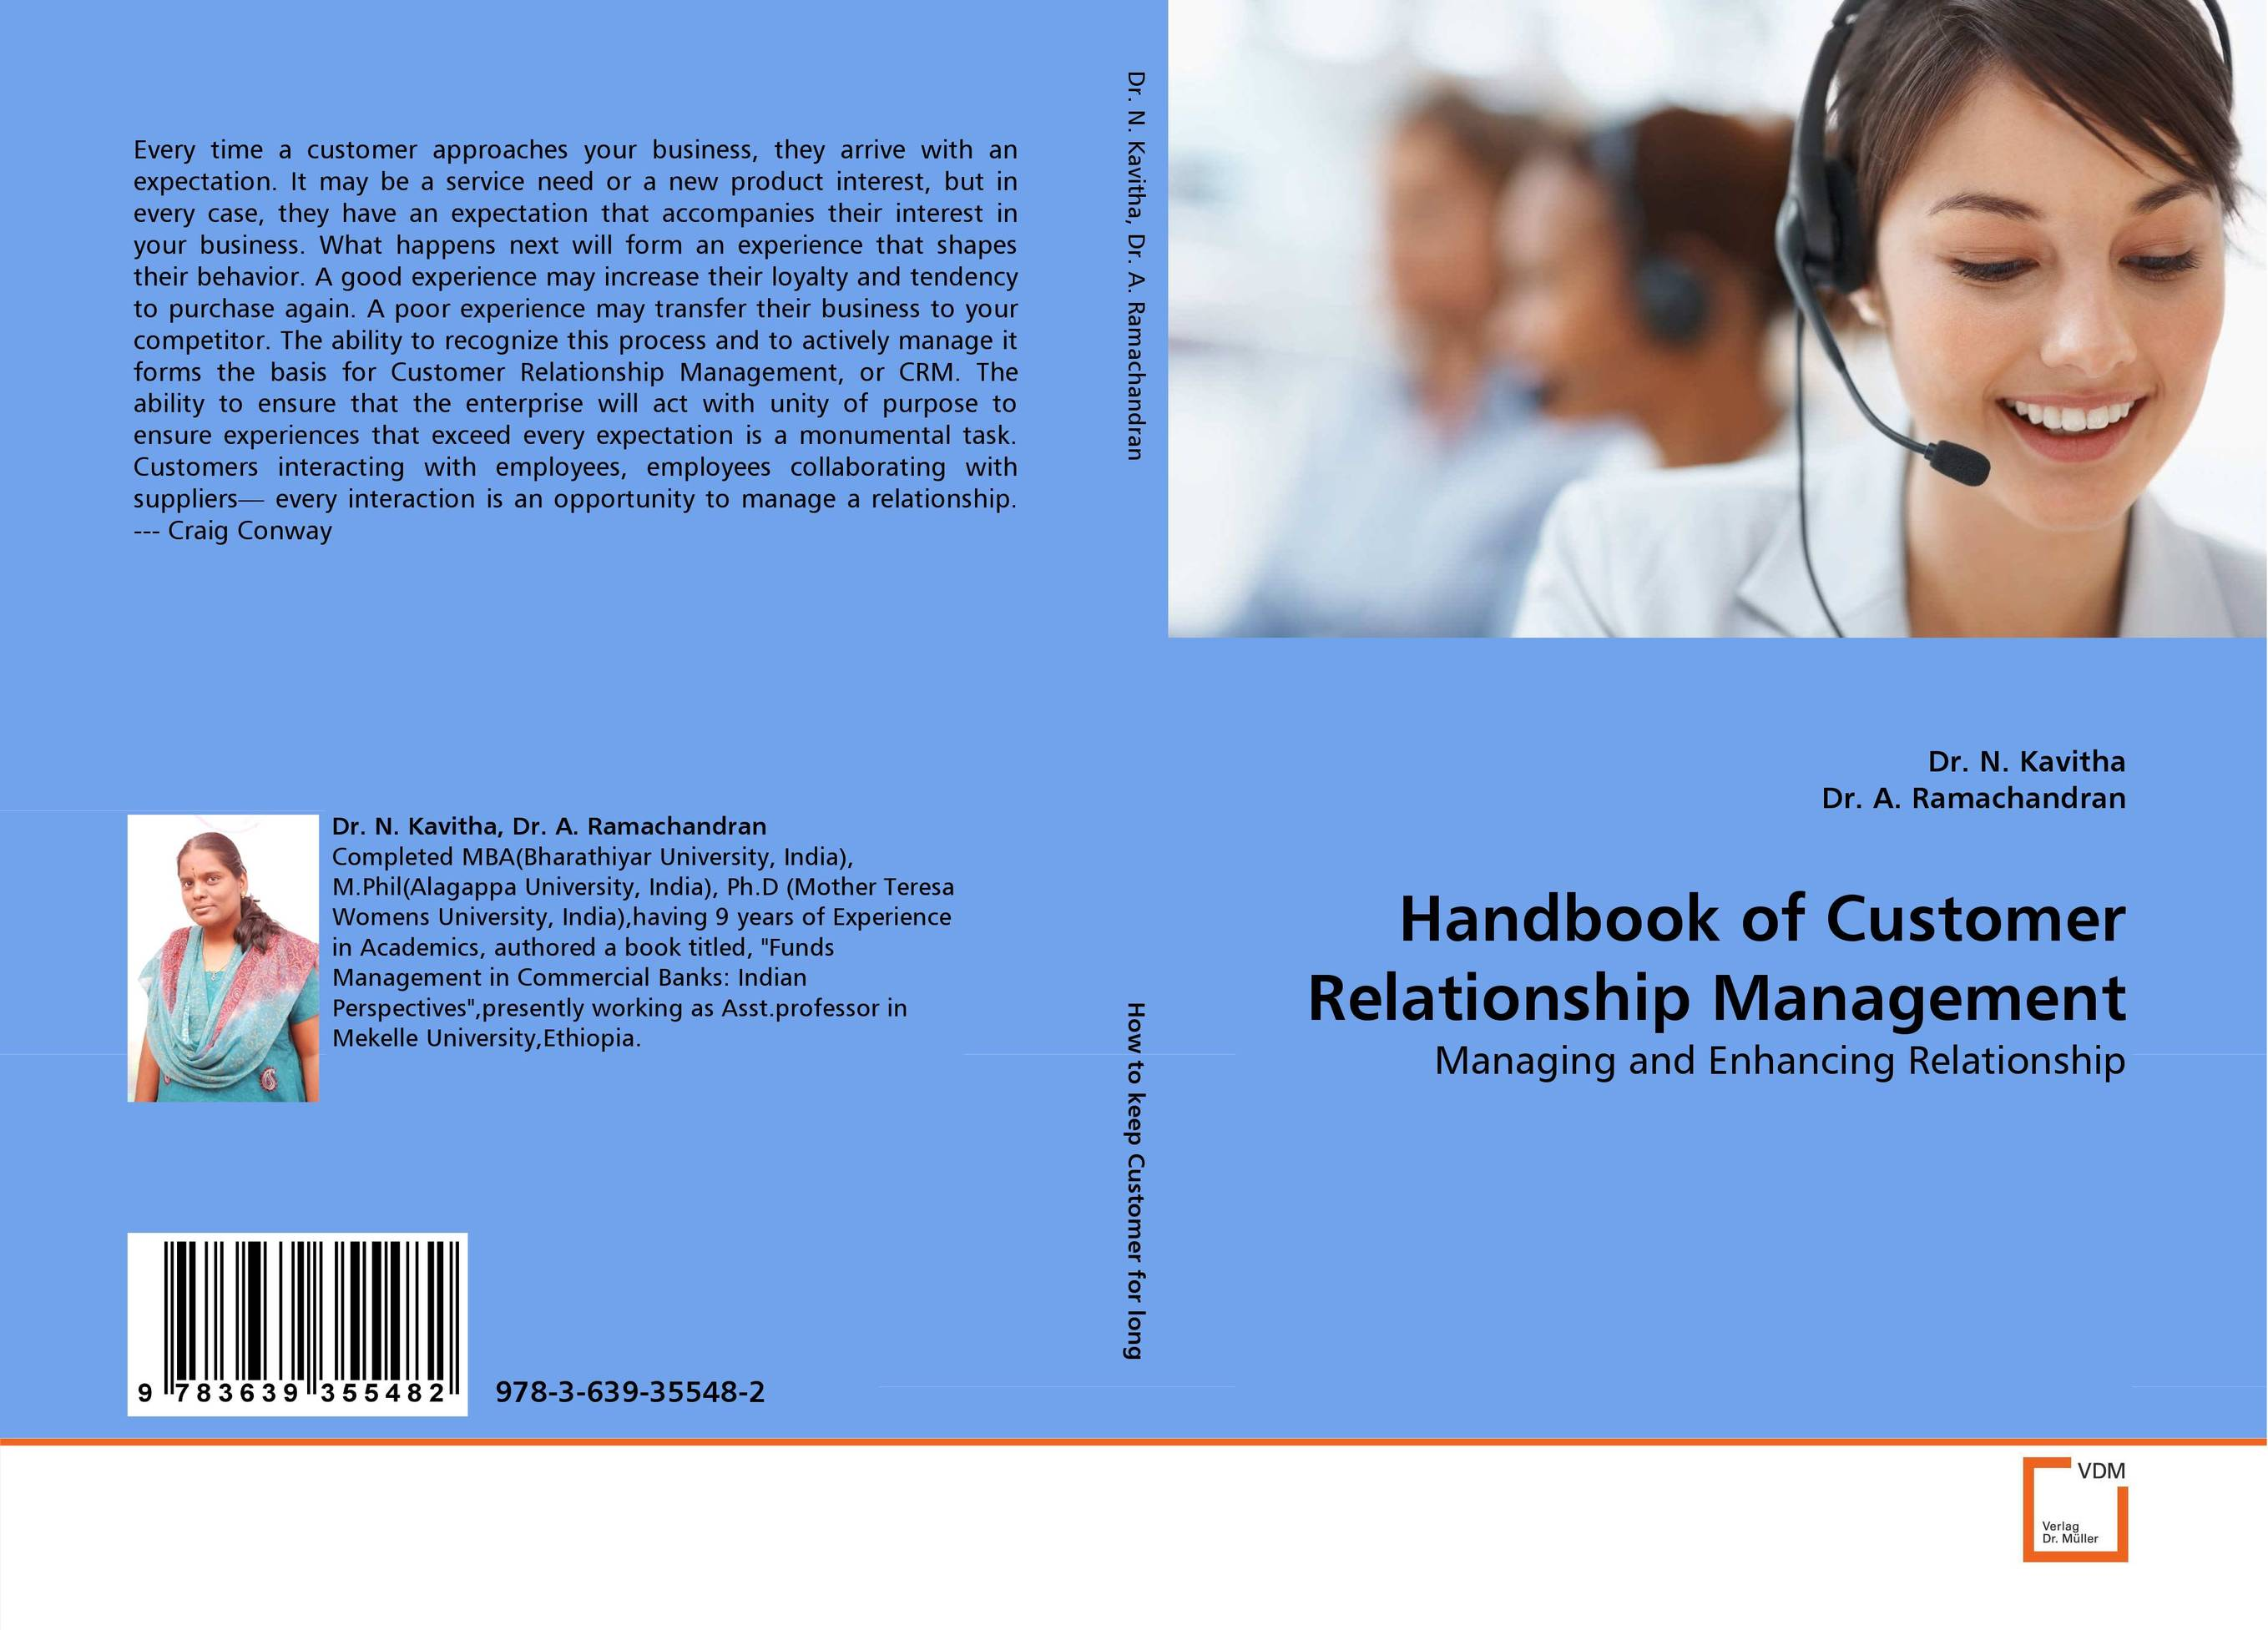 Handbook of Customer Relationship Management admin manage